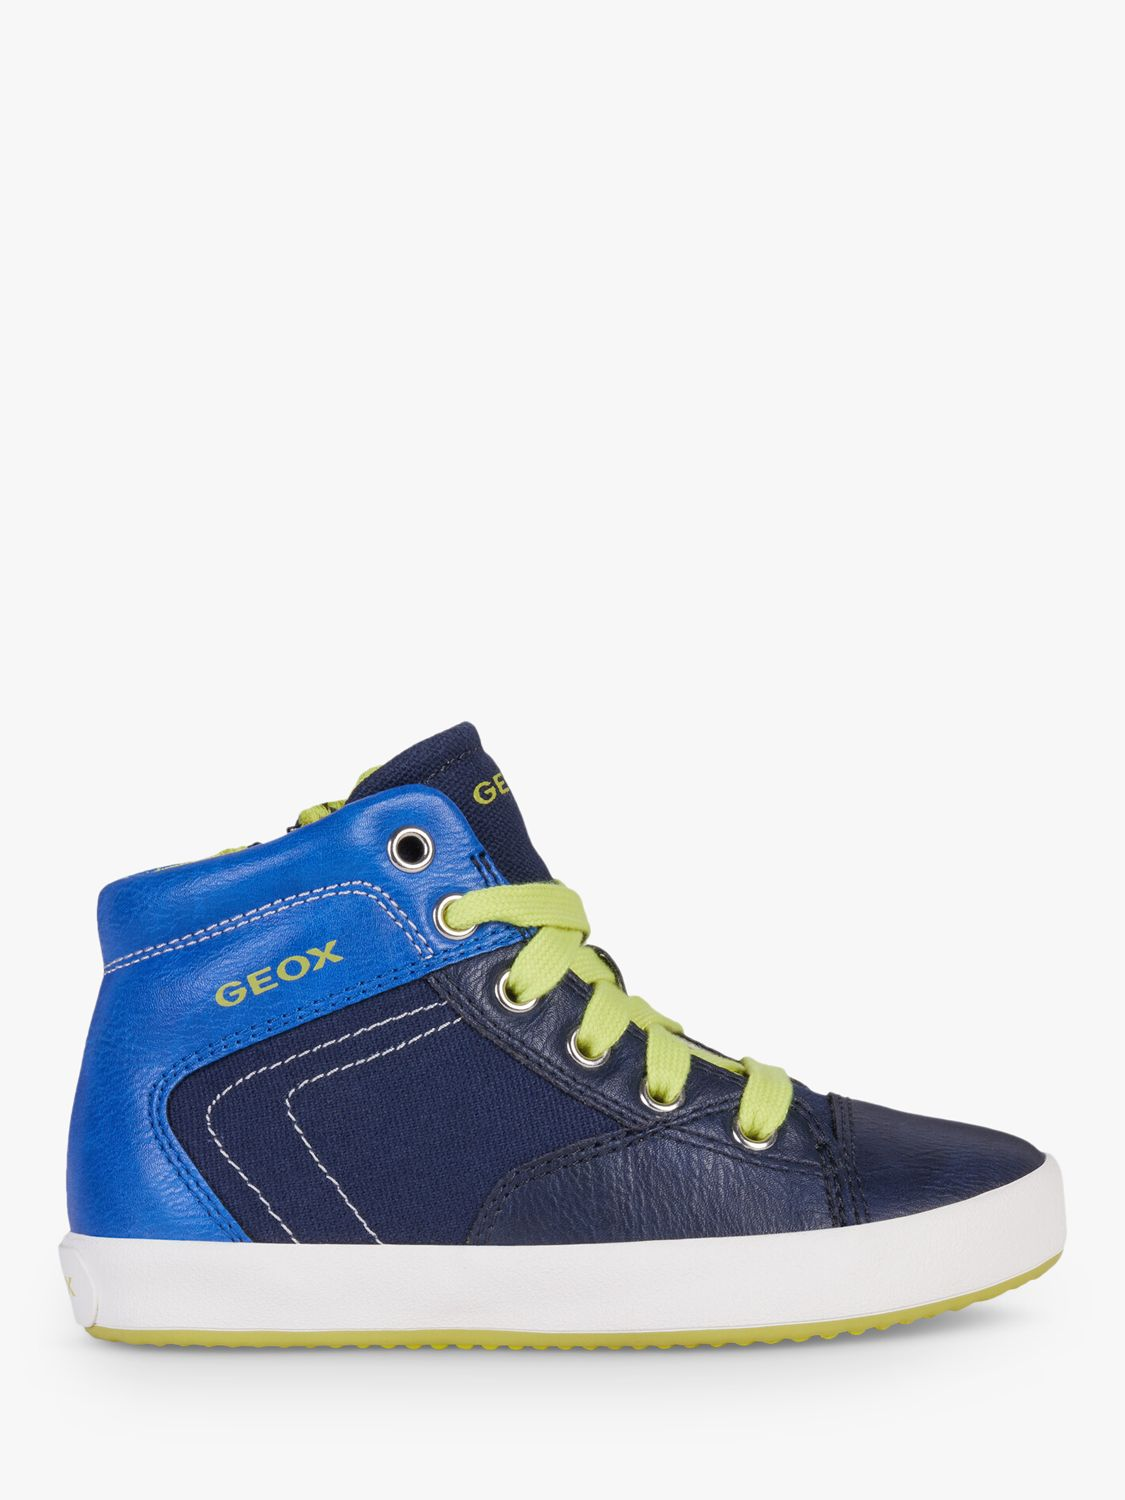 Geox Geox Children's Gisli High Top Trainers, Navy/Royal